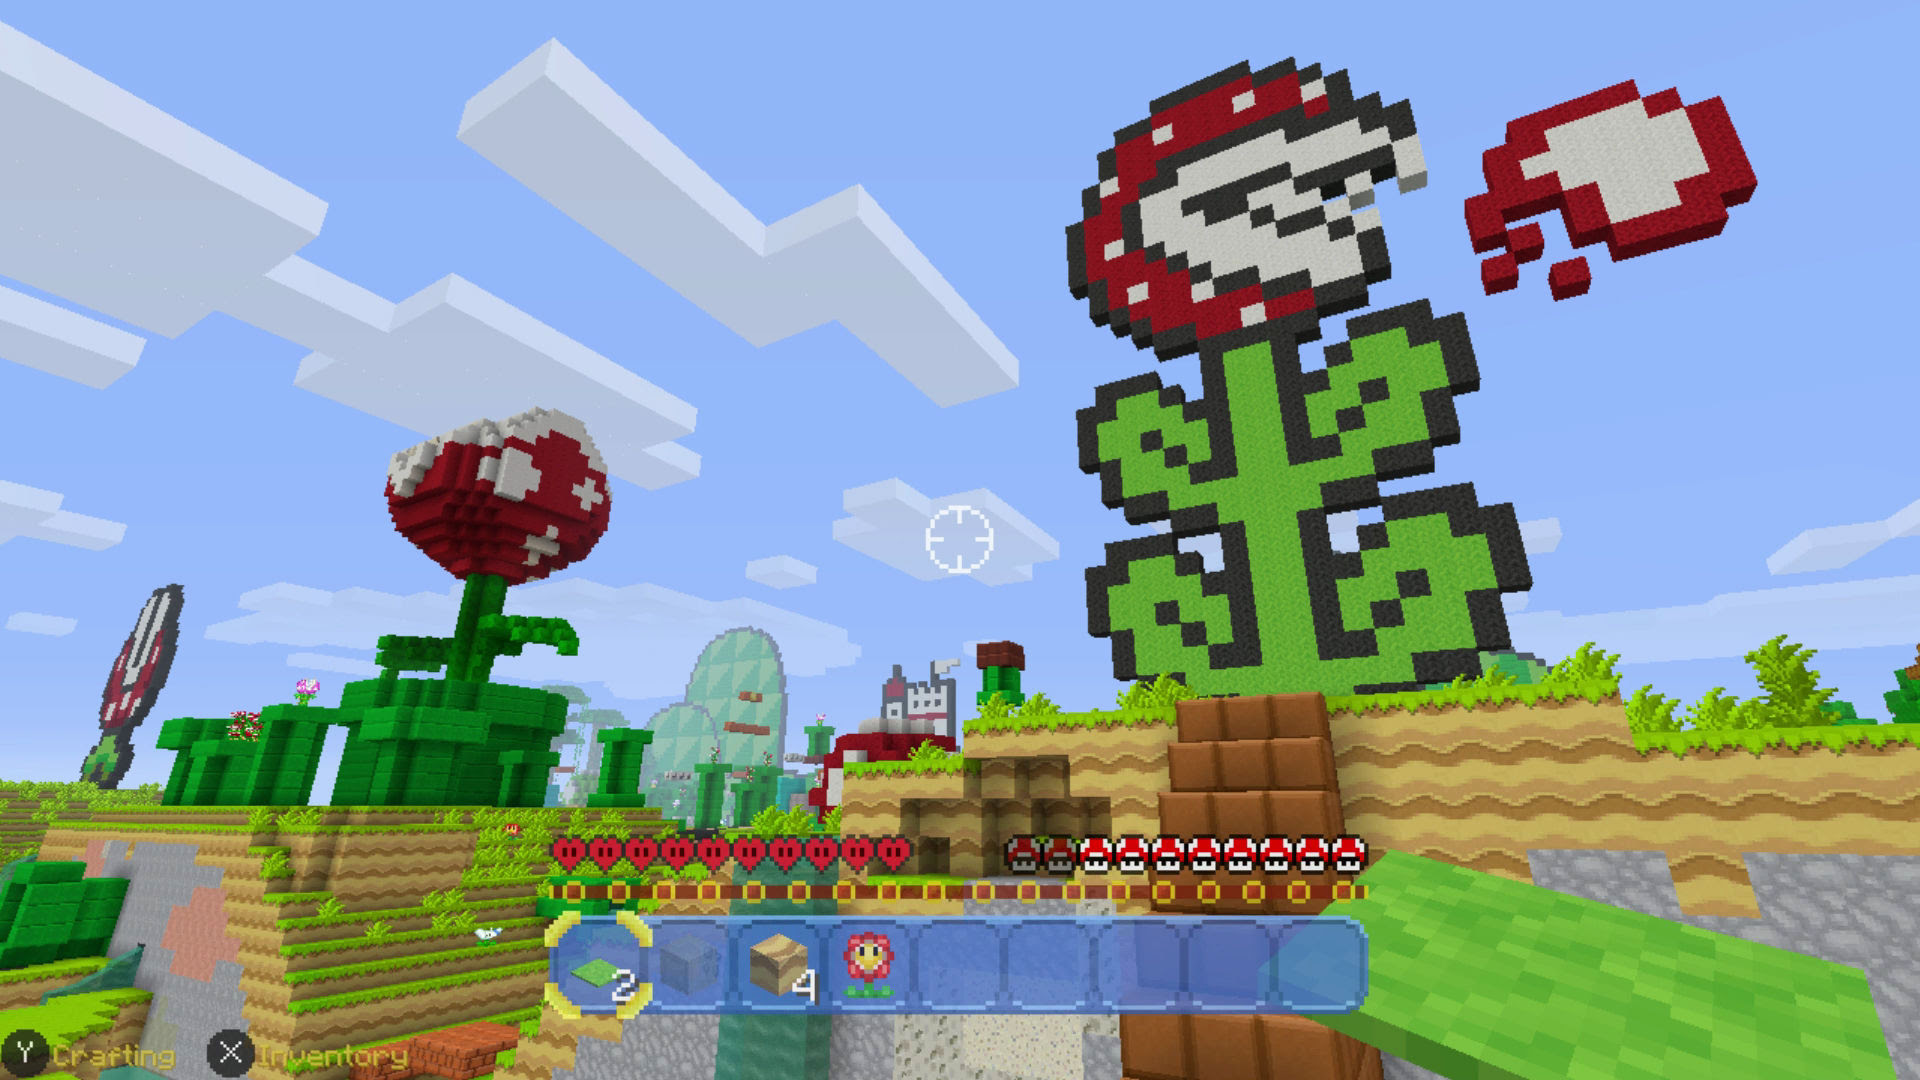 Minecraft for Switch finally gets the ability to run in 1080p when docked screenshot